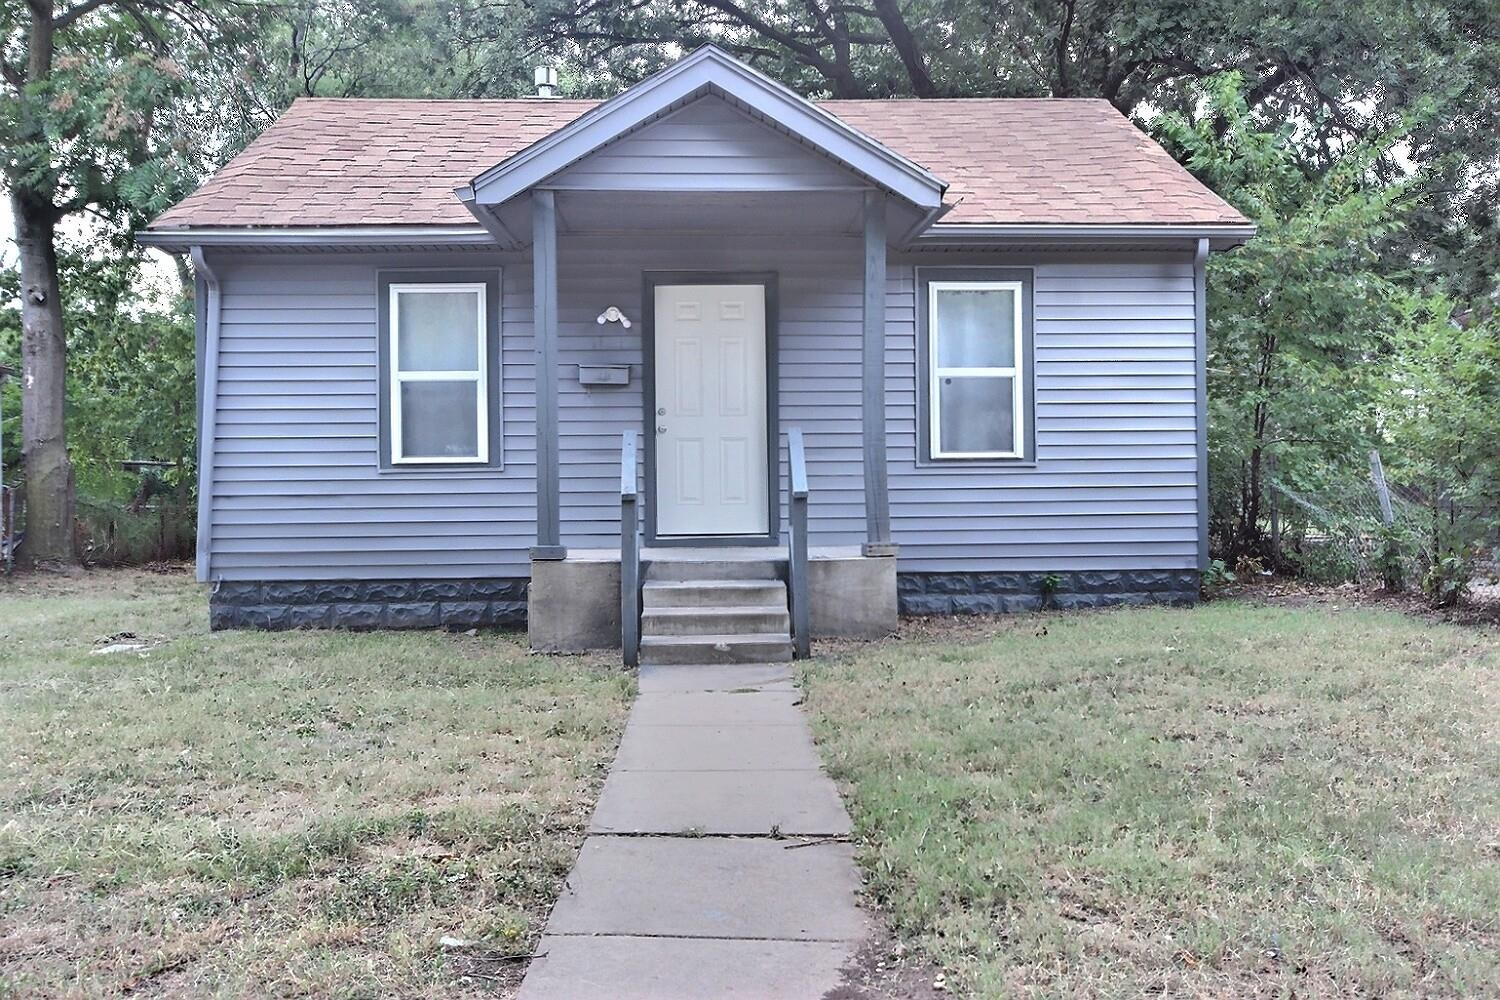 This little gem has been totally renovated. This home has new windows, new interior and exterior doo